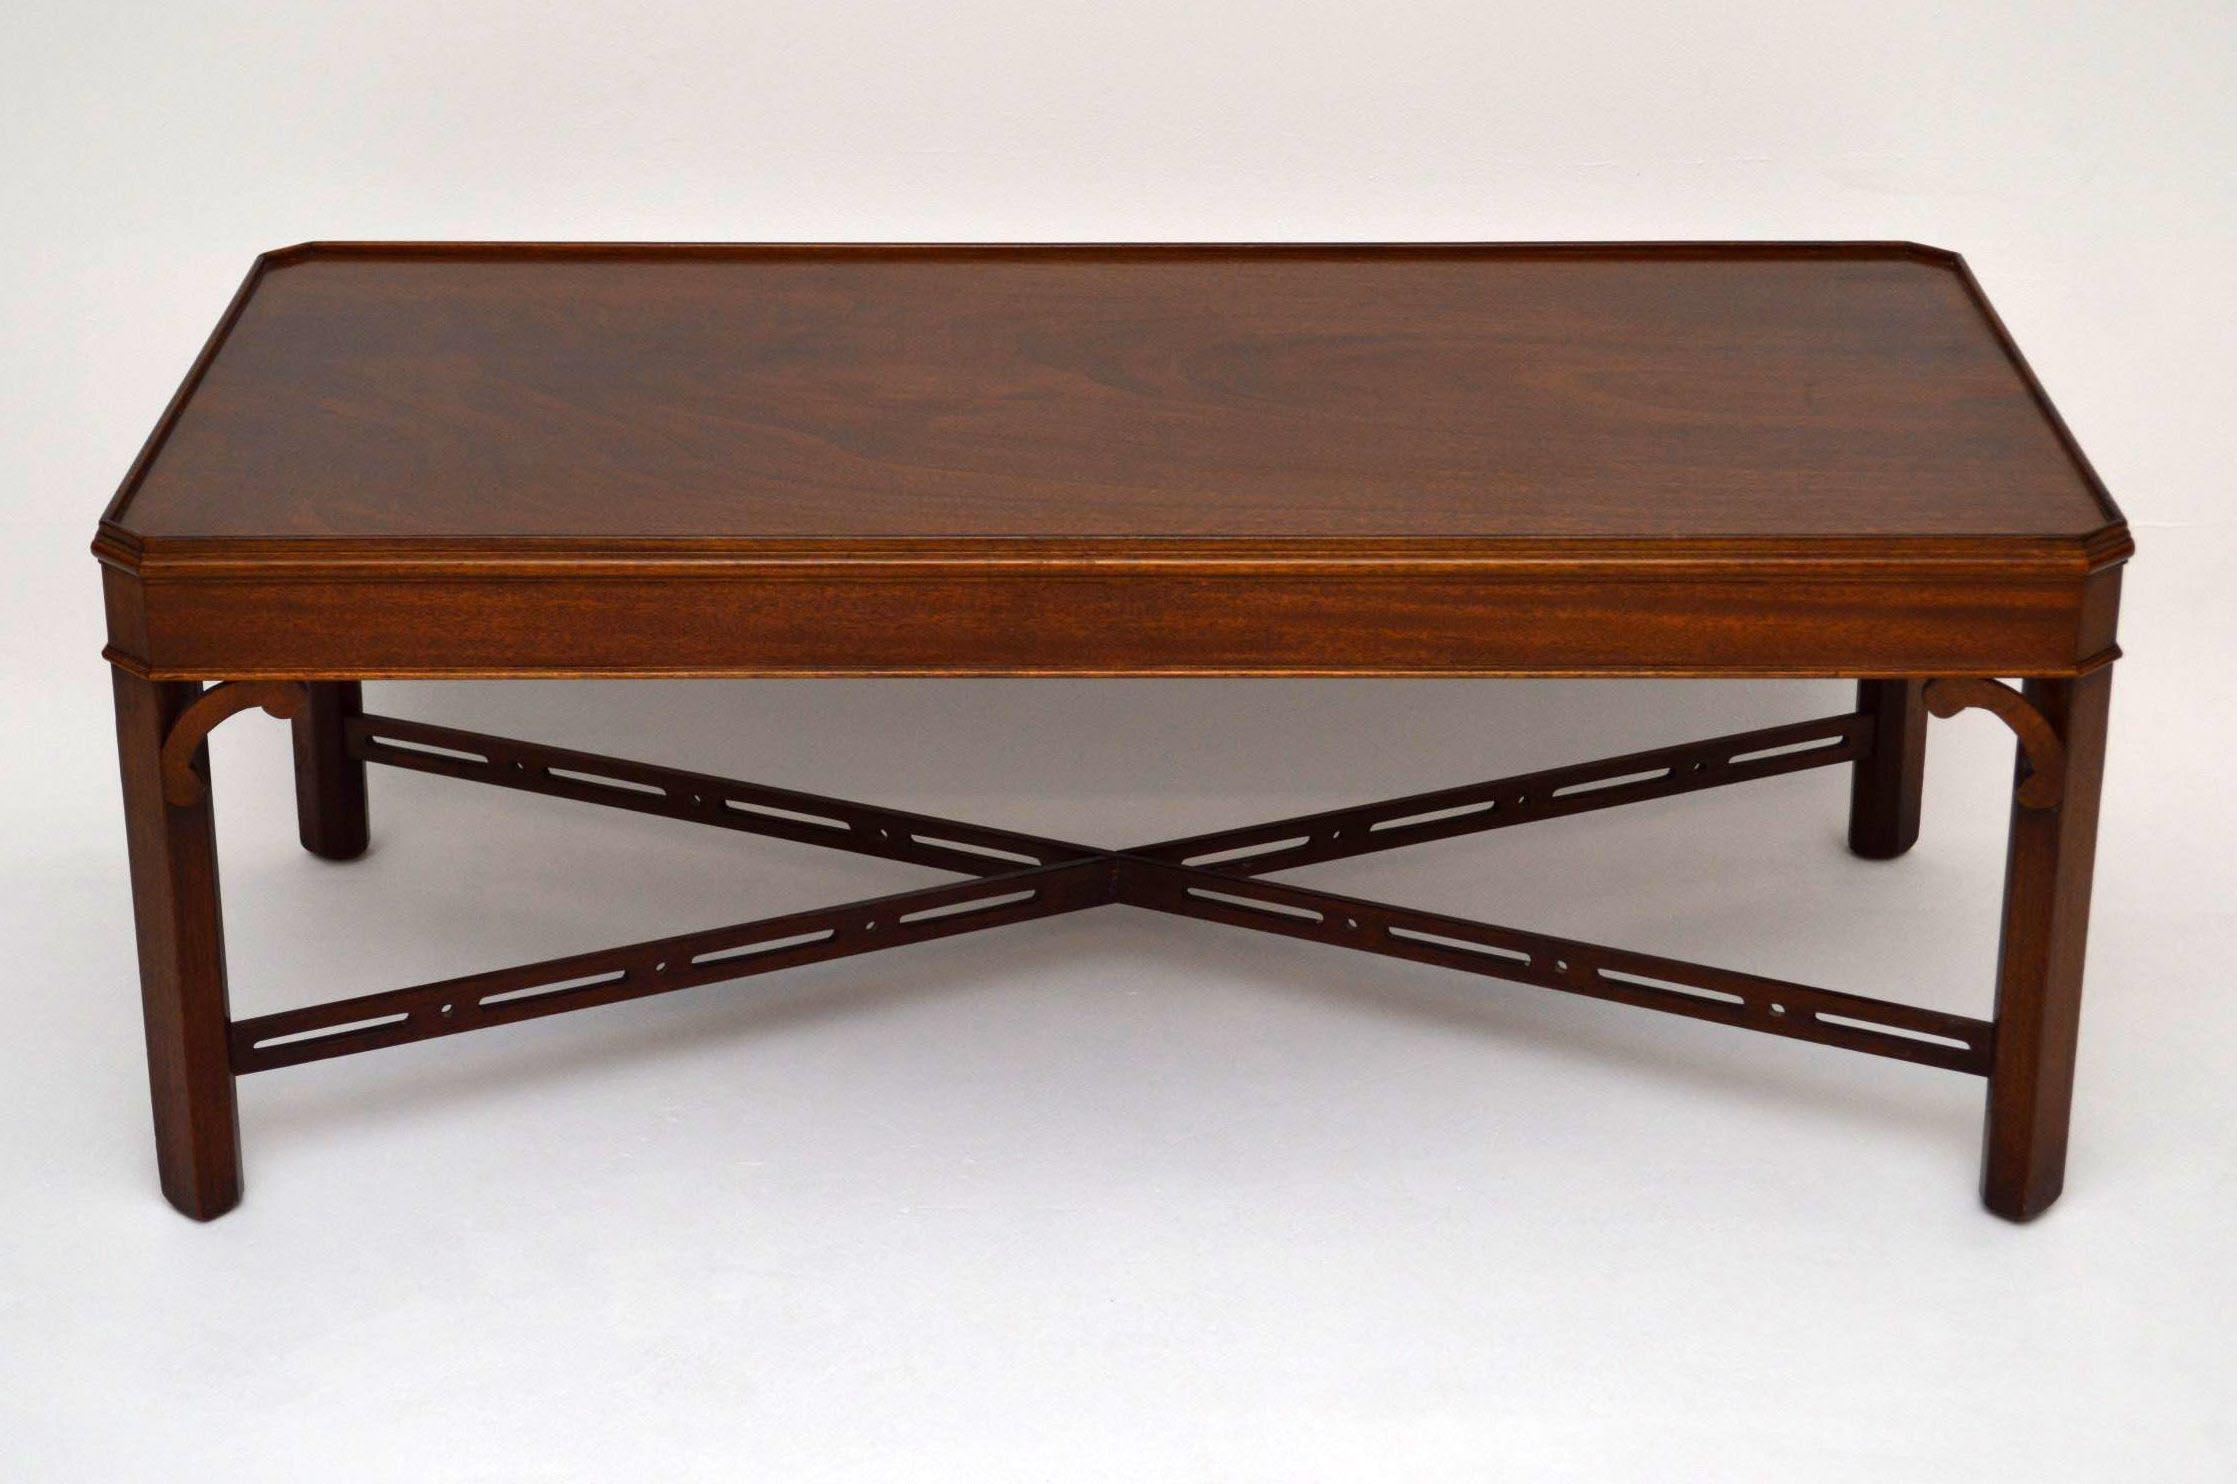 Large mahogany coffee table coffee table design ideas Wide coffee table